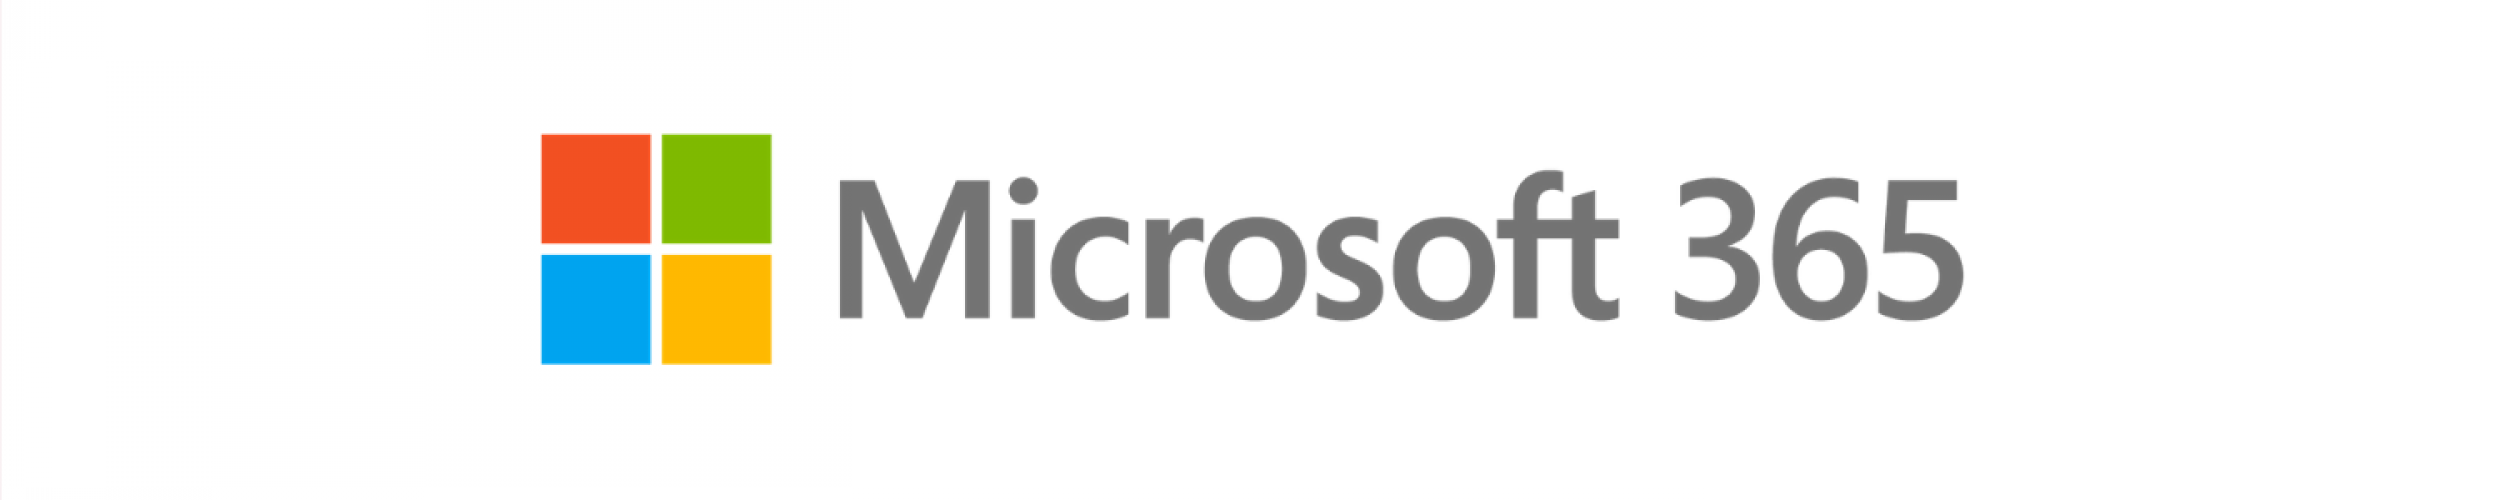 Microsoft 365 (Office 365) training